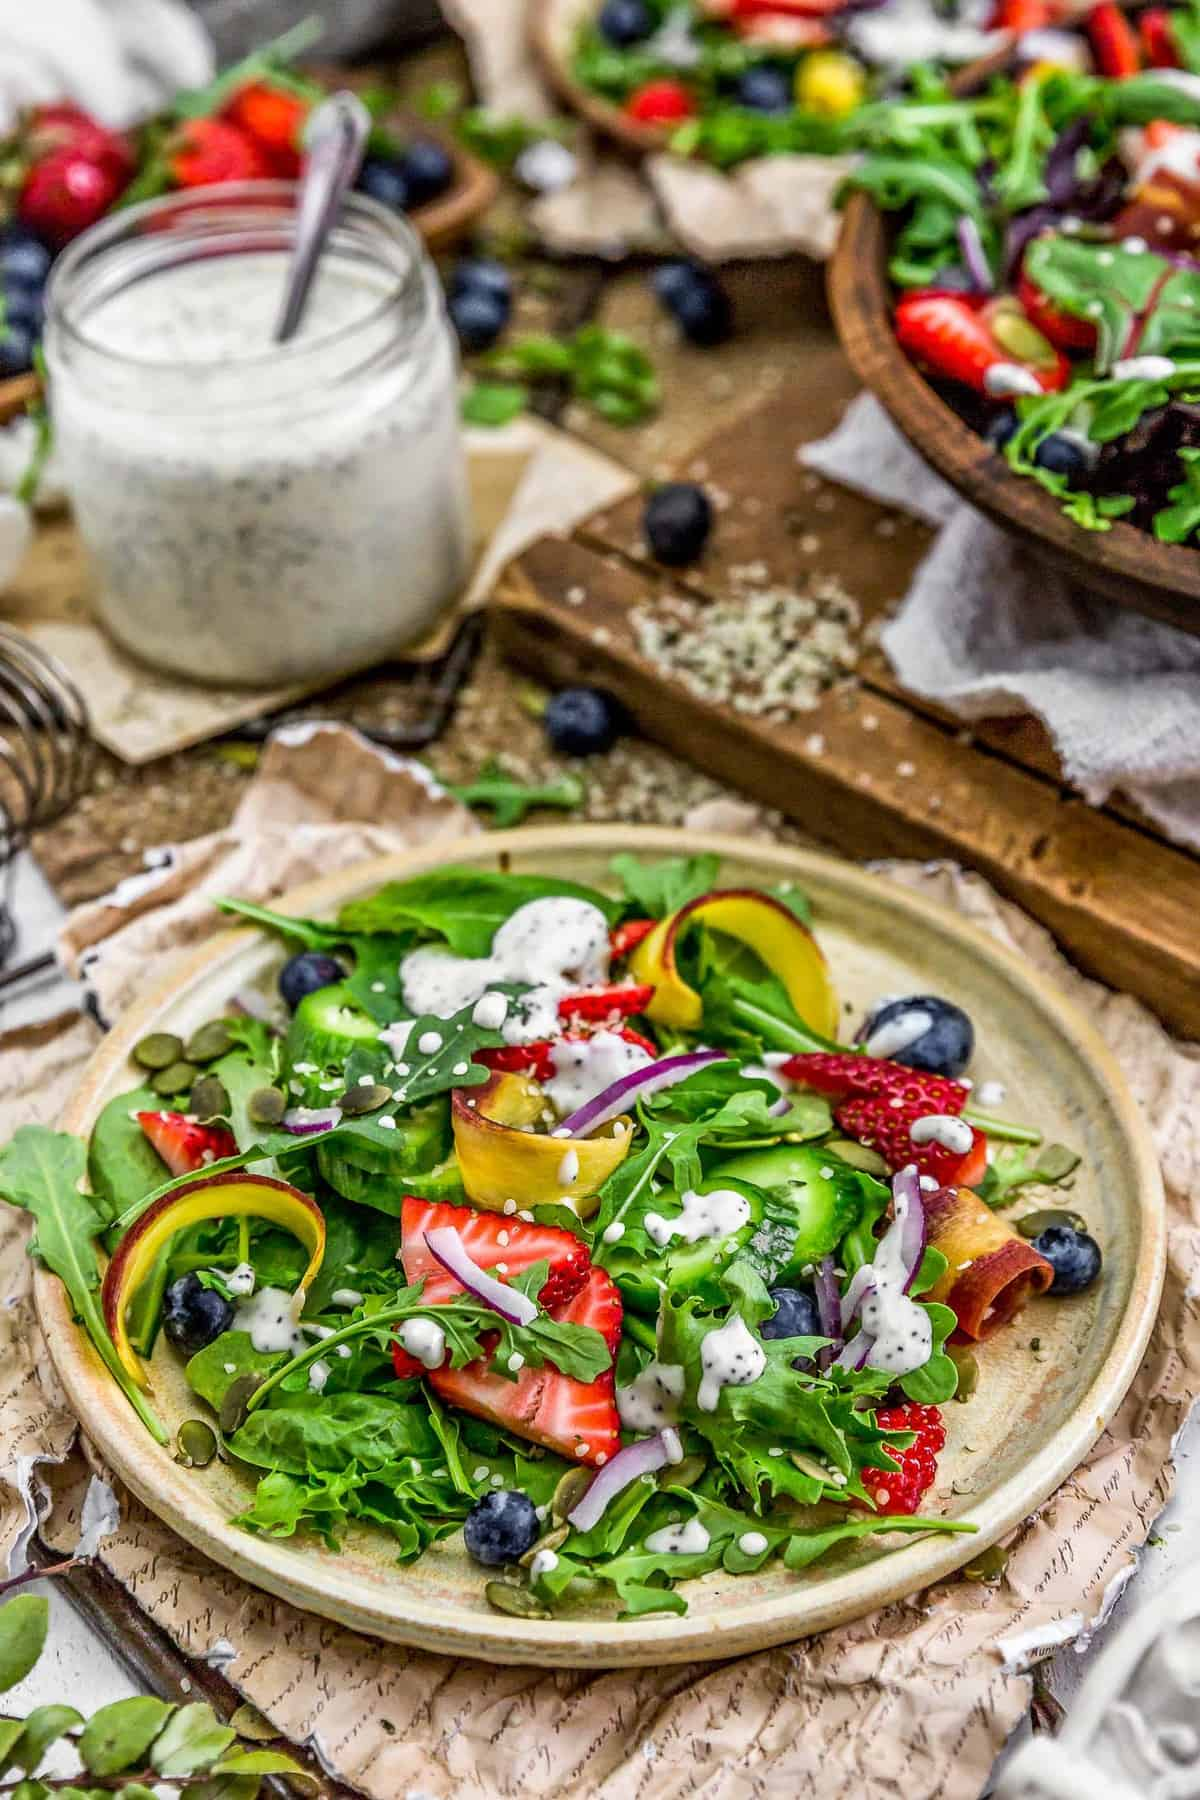 Tablescape of salad and Vegan Lemon Poppy Seed Dressing